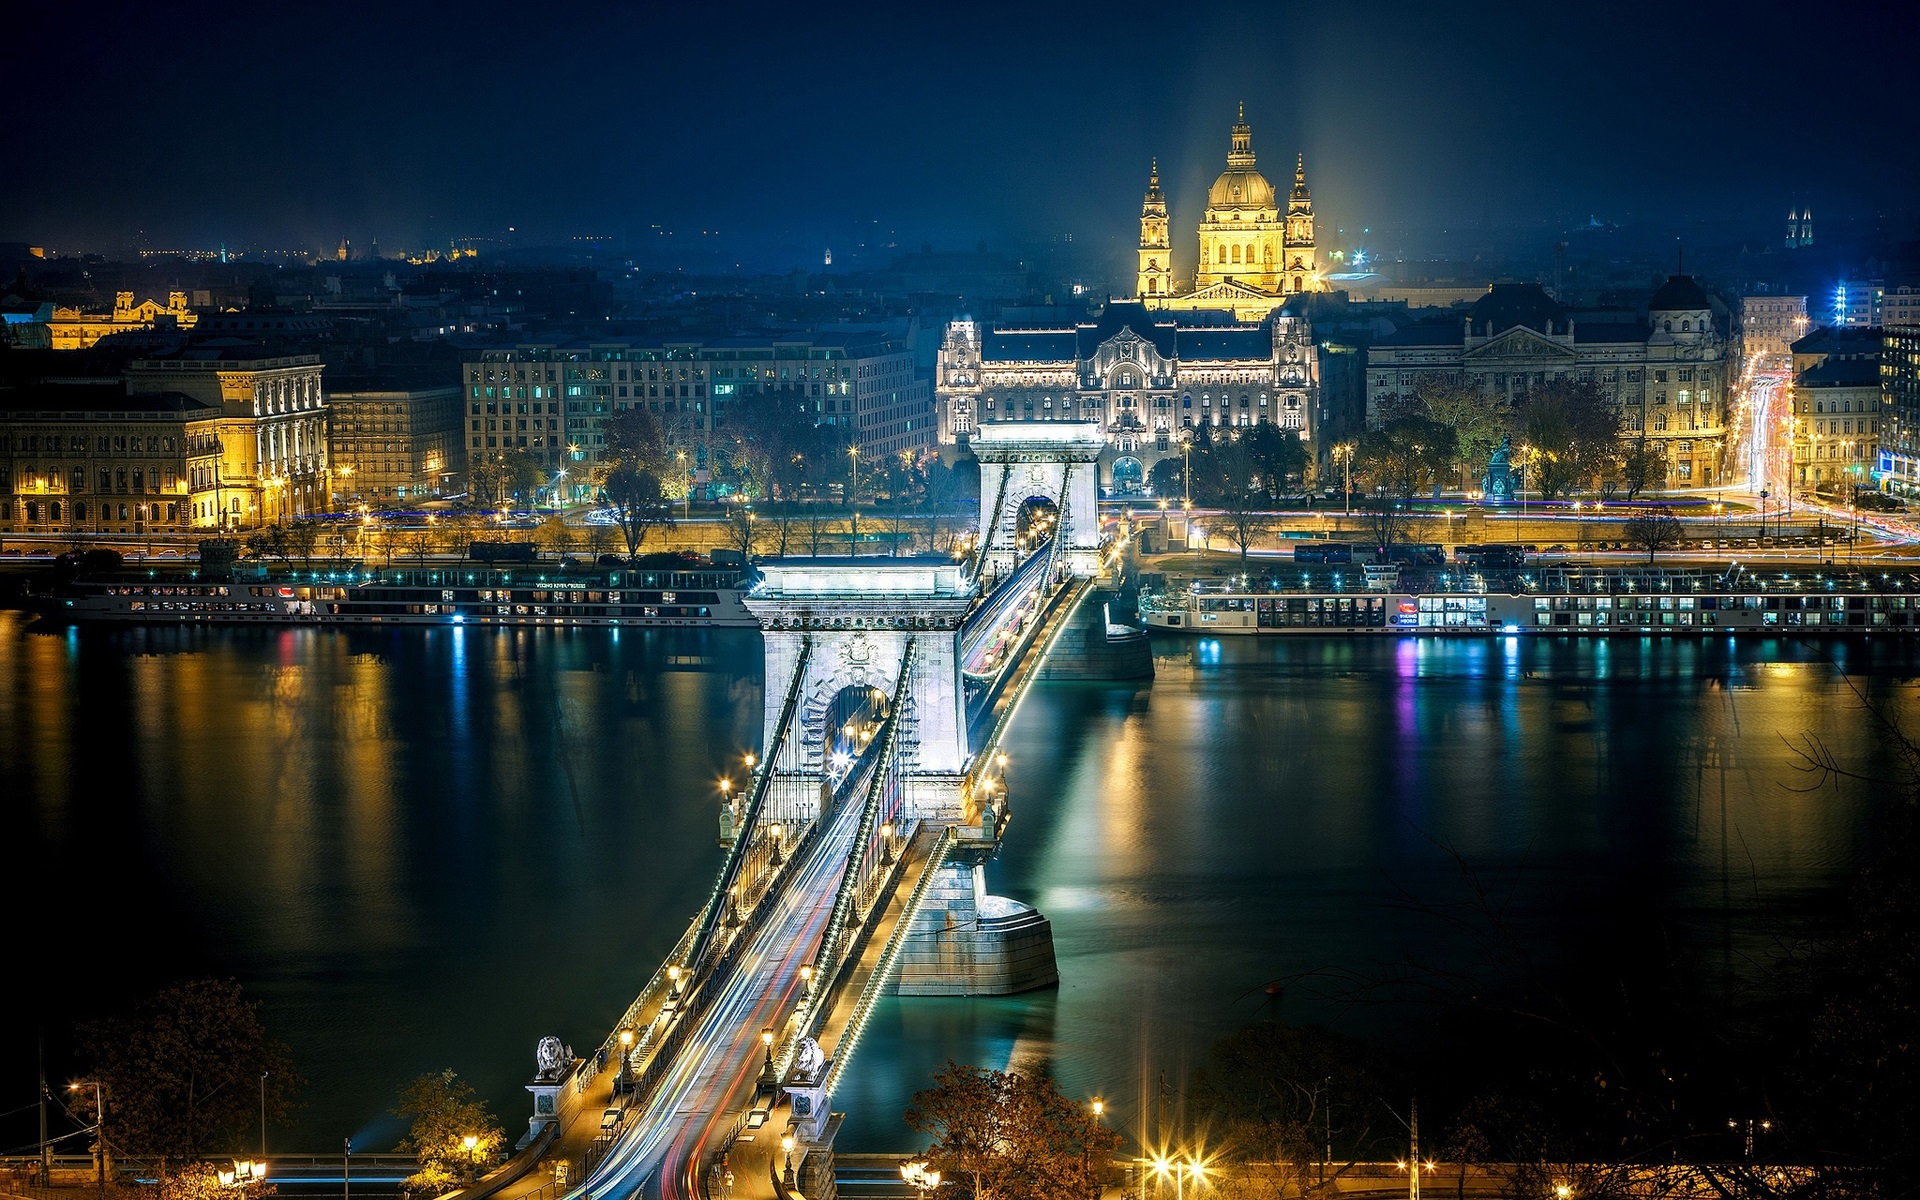 zBudapest-Hungary-the-Danube-river-city-night-lights_1920x1200